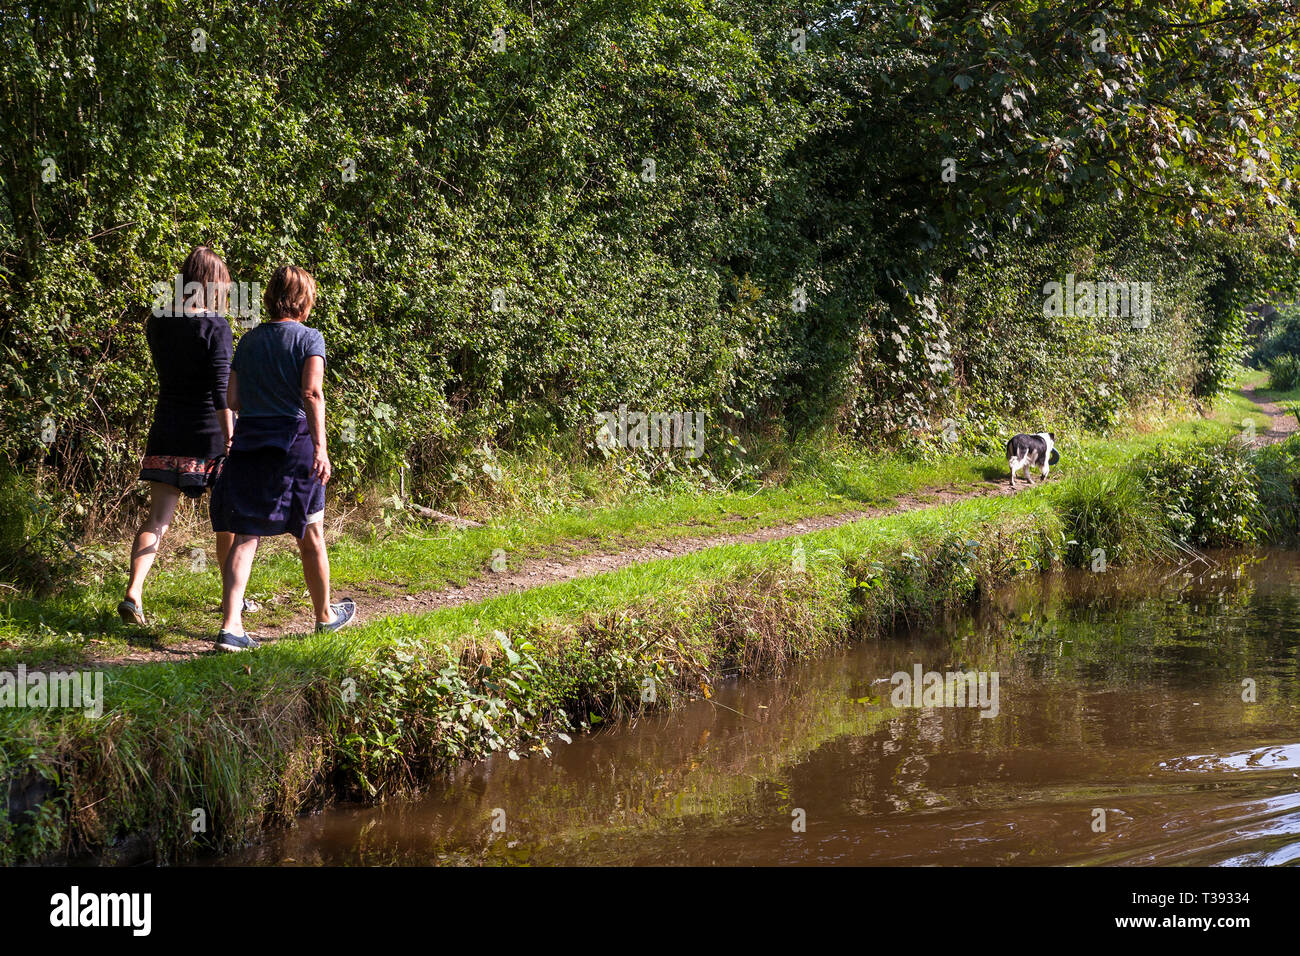 Two women walking the towpath of the Llangollen Canal near St. Martin's, Shropshire, England.  MODEL RELEASED - Stock Image